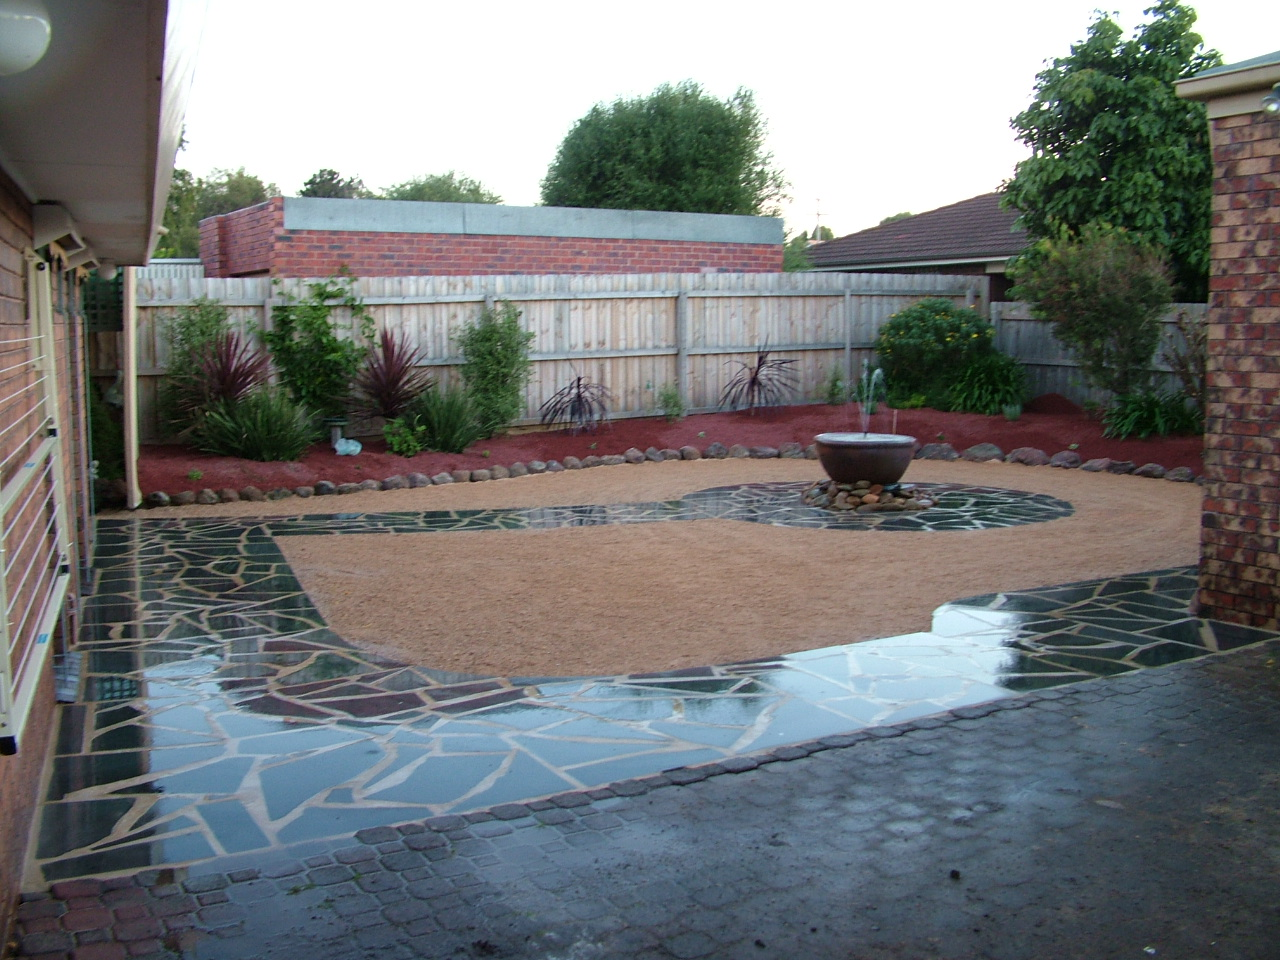 Scorpio landscaping geelong crazy pave and water feature for Landscaping rocks geelong